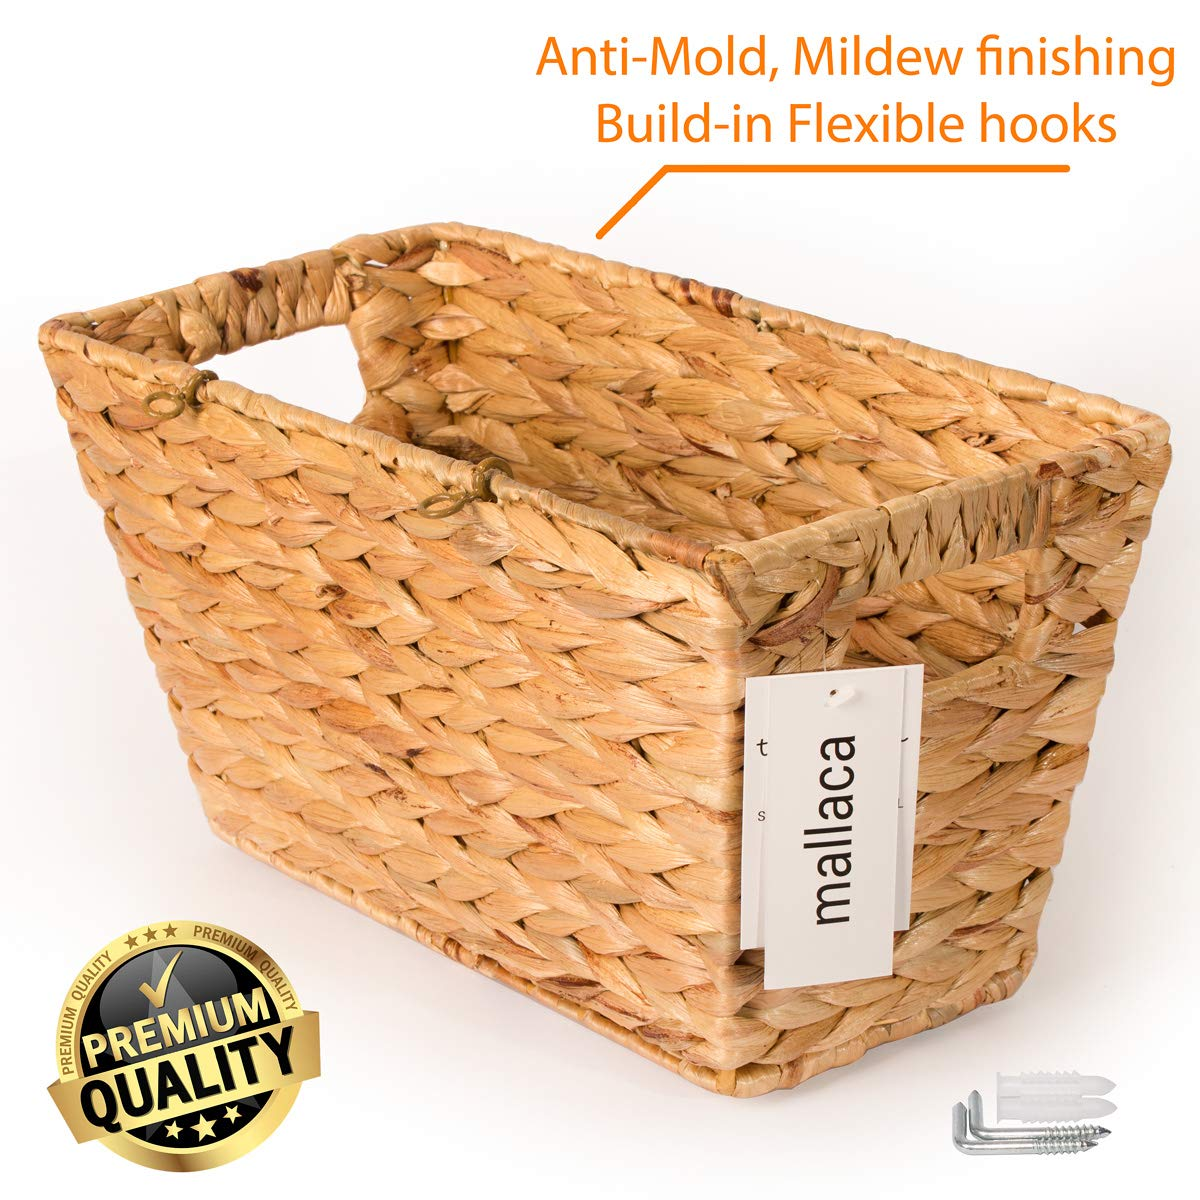 BEST CHOICE Magazine Basket Anti-Mold Mildew Stained Special Finishing Handmade of Nature Water Hyacinth, Book Toys CDs DVDs Storage 15''L x 8''W x 8.2''H by Mallaca